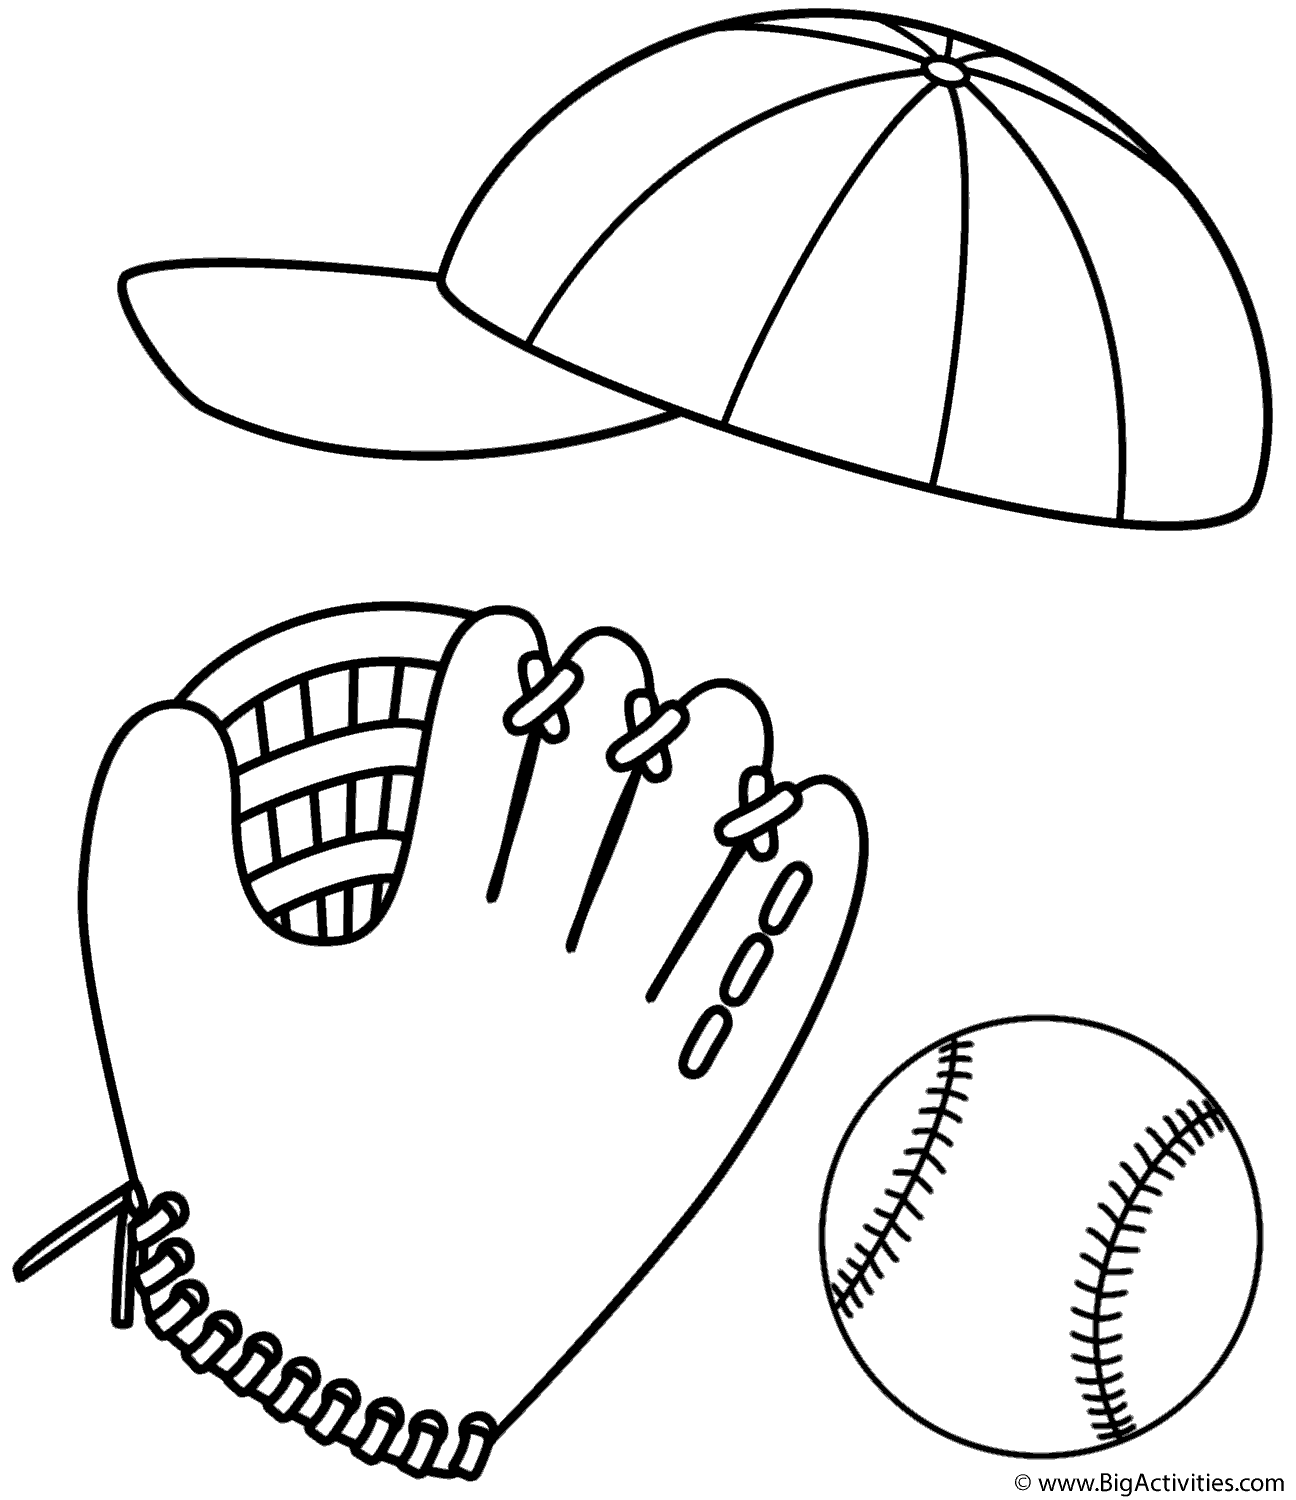 ball coloring pages - photo#46